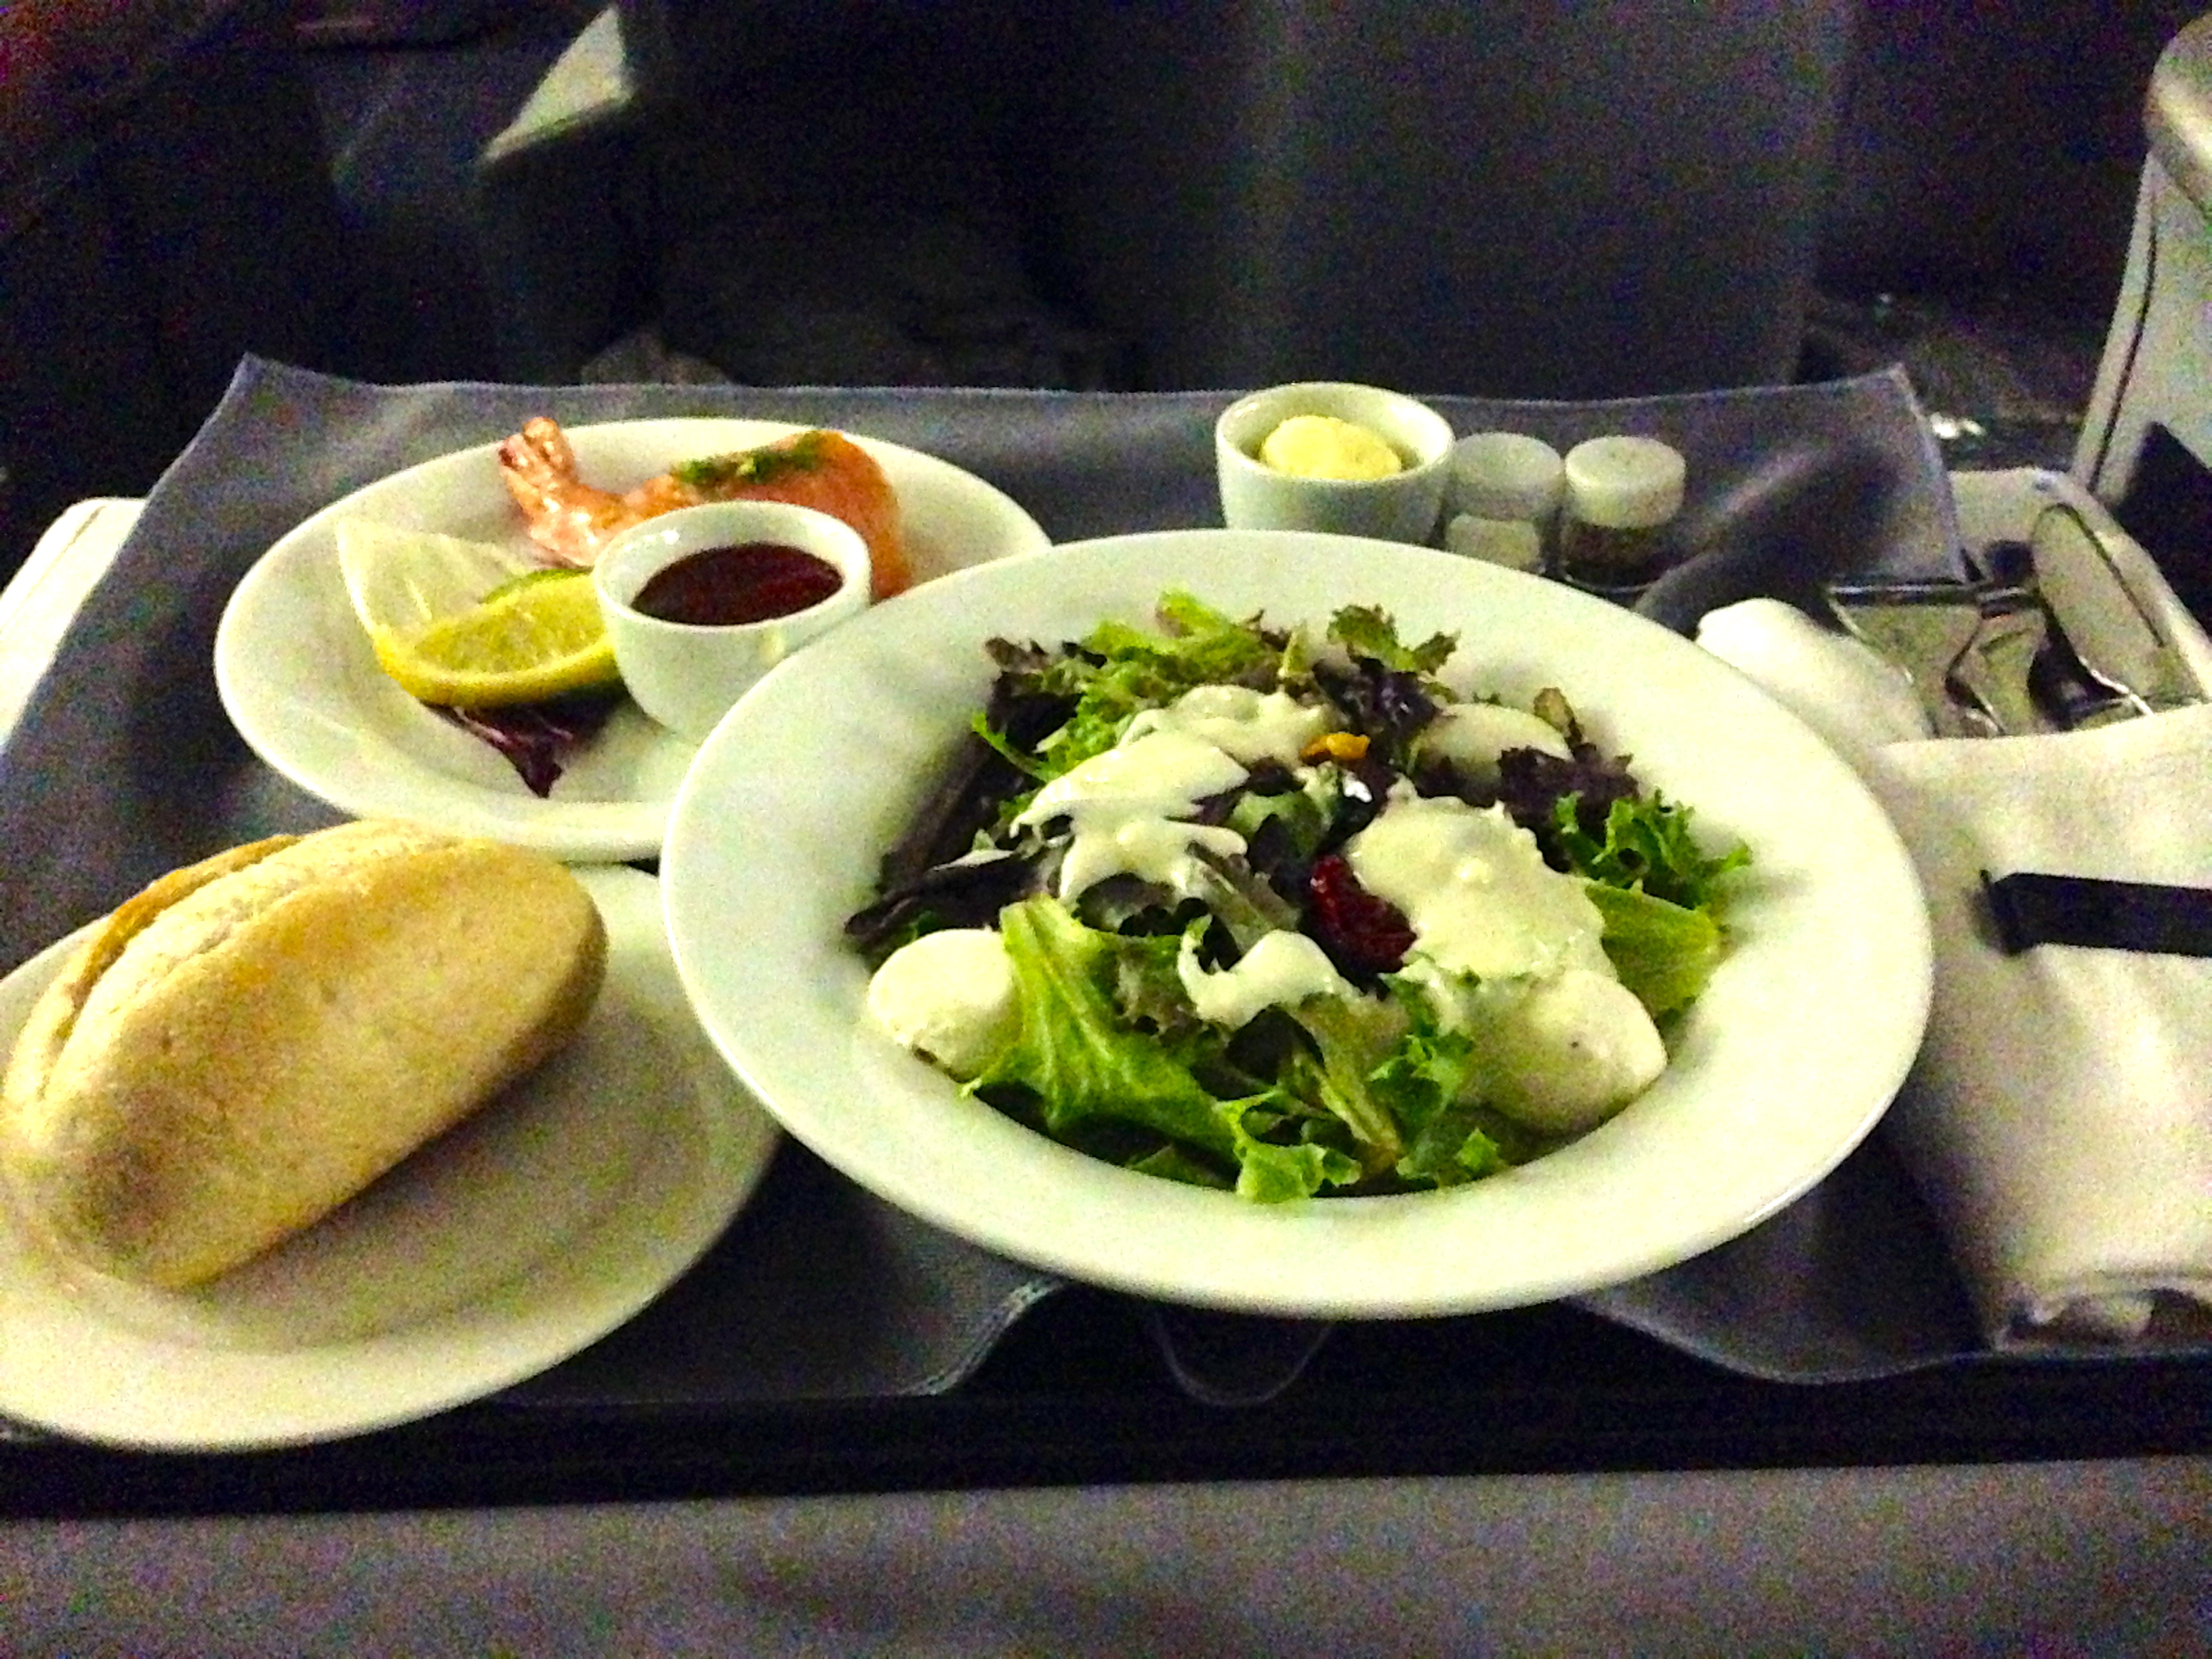 United Airlines 767-200 Business Class Appetizer and Salad Course BusinessFirst Chicago to Amsterdam